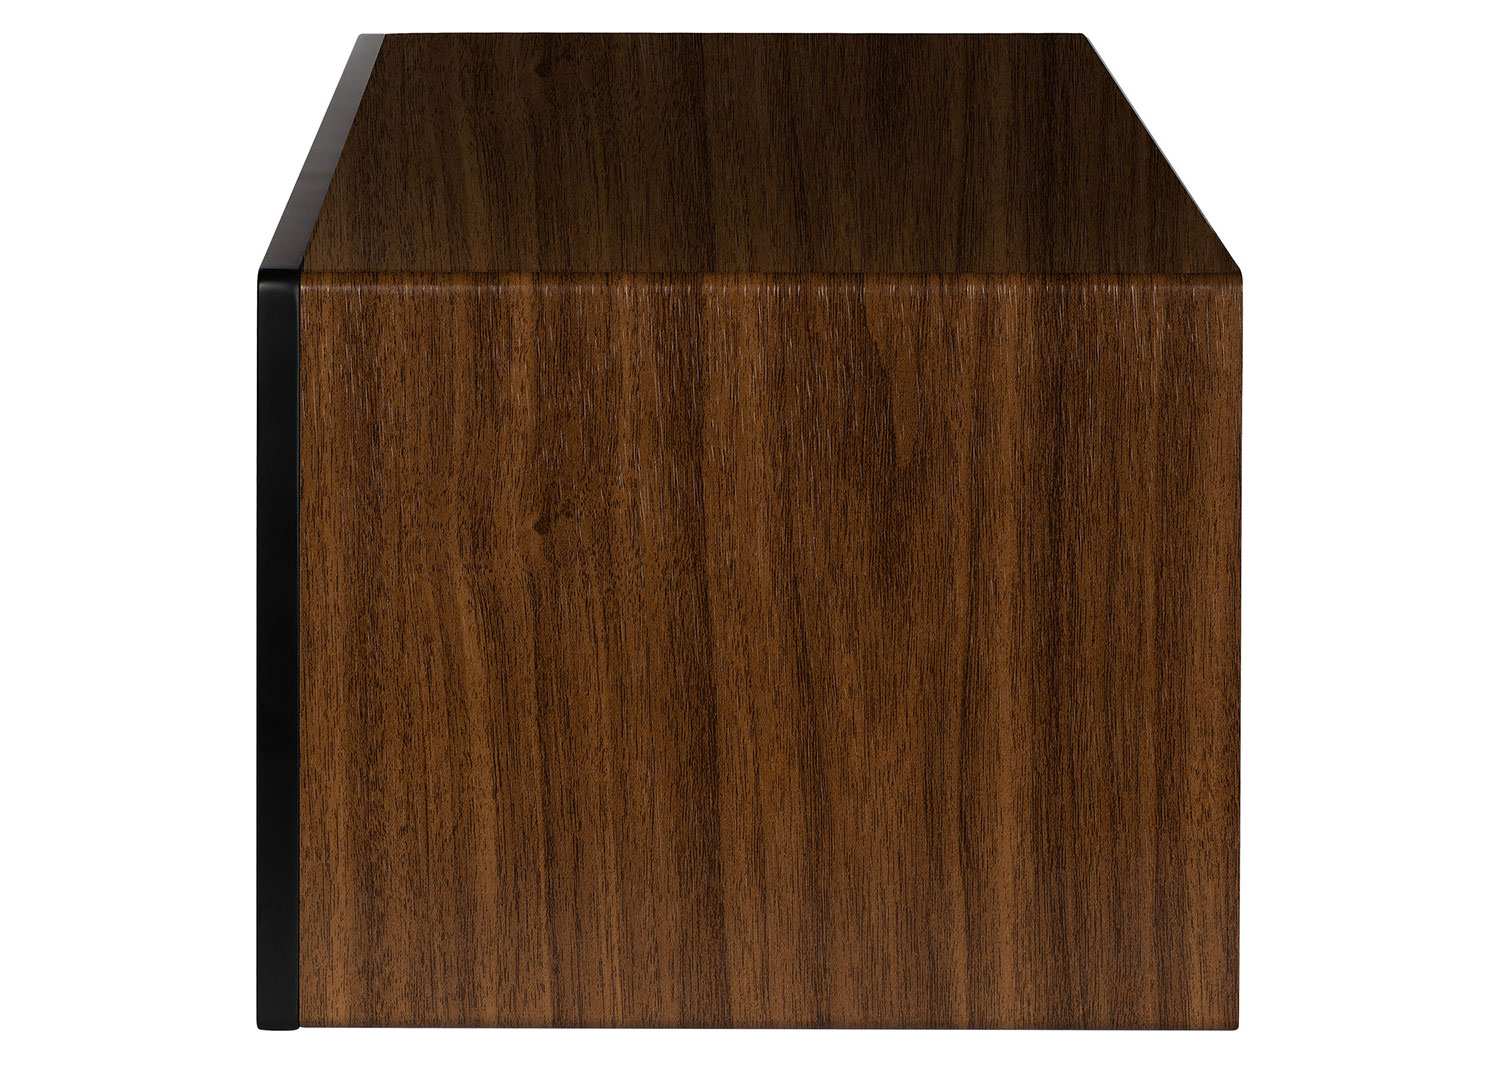 Debut Reference DCR-52